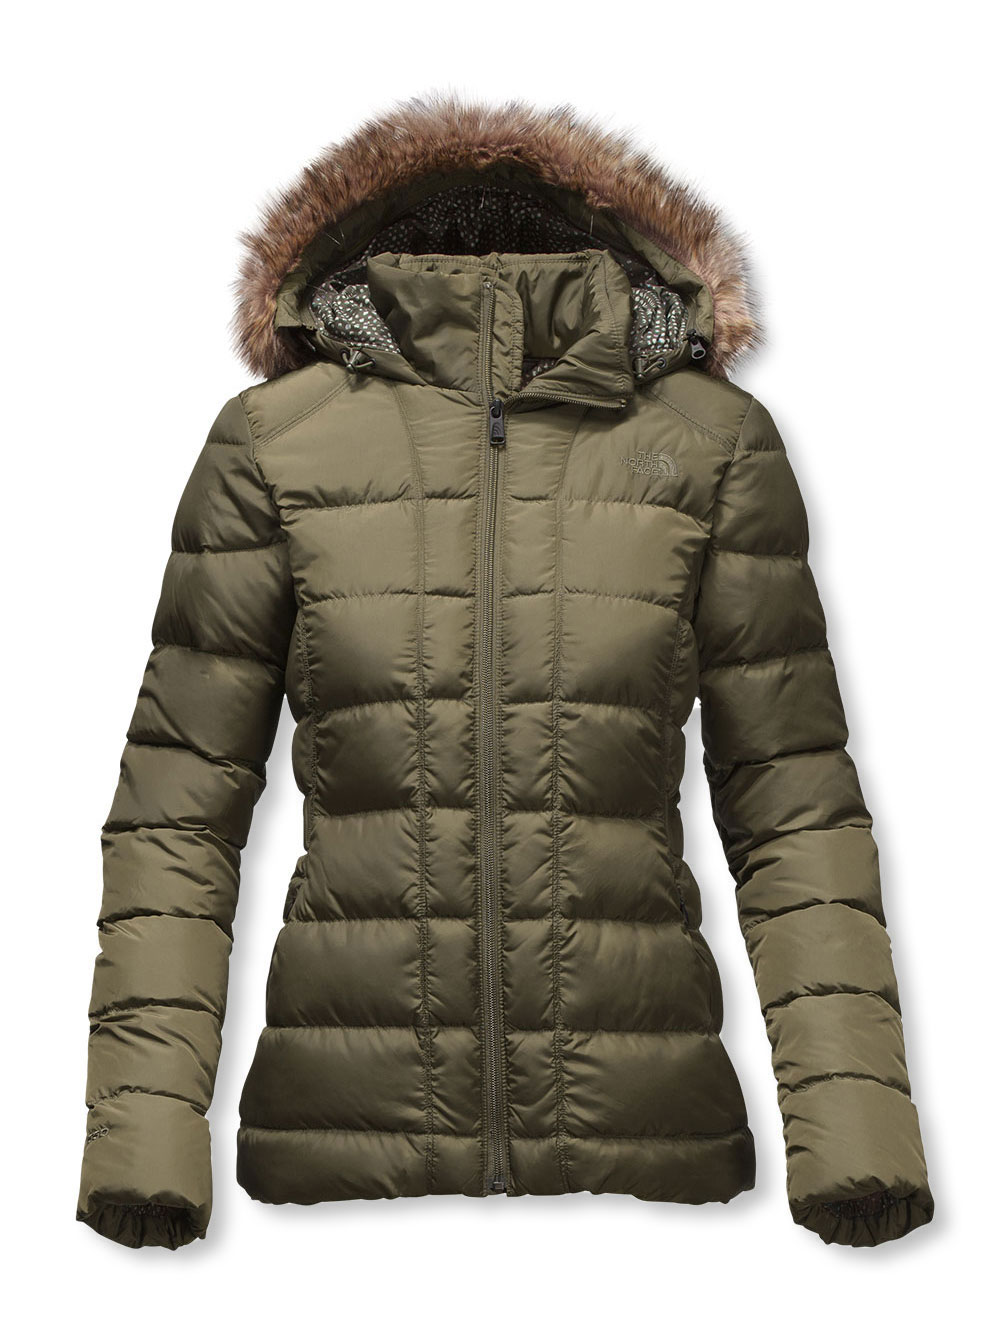 The North Face Women's Gotham Down Jacket (Sizes S - XL) - grape leaf, m